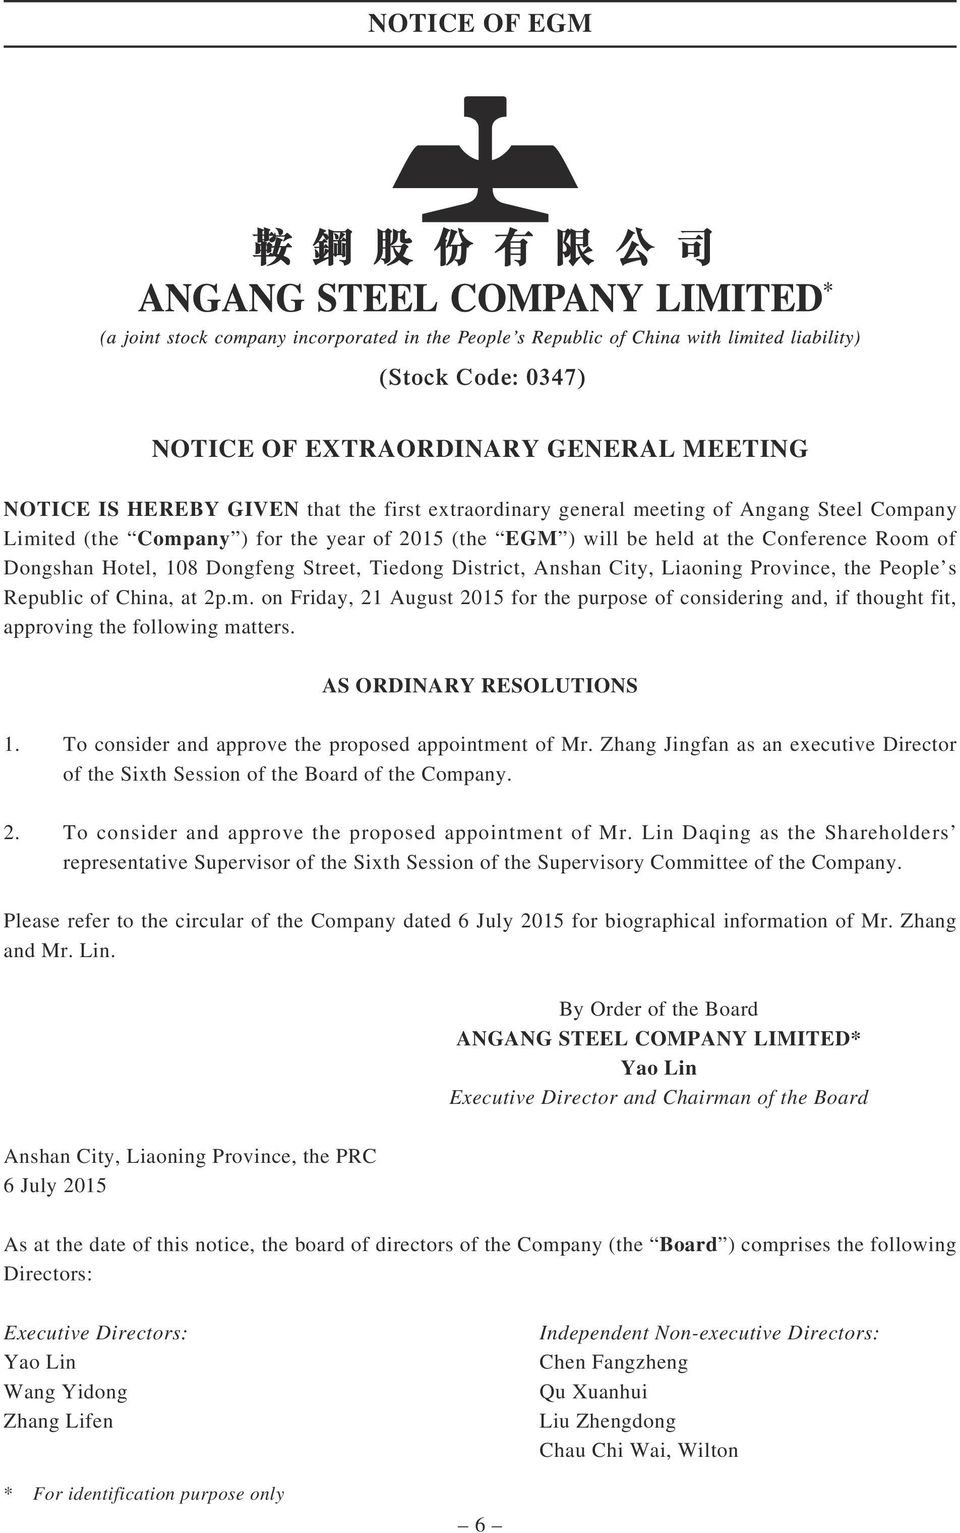 AS ORDINARY RESOLUTIONS 1. To consider and approve the proposed appointment of Mr. Zhang Jingfan as an executive Director of the Sixth Session of the Board of the Company. 2.